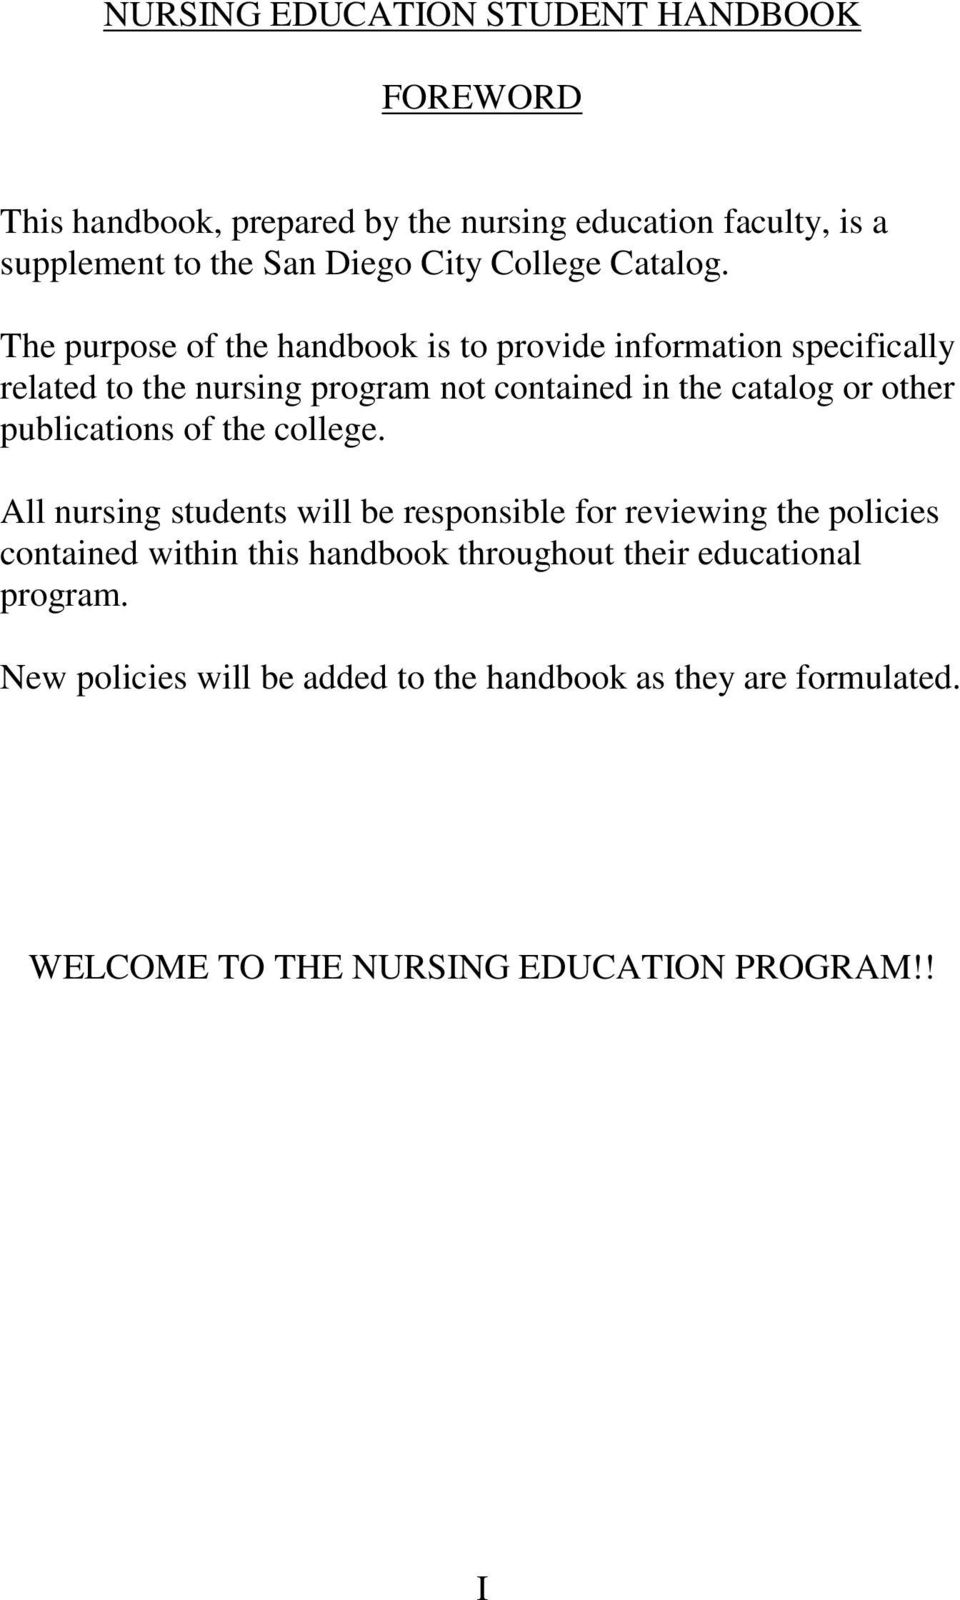 The purpose of the handbook is to provide information specifically related to the nursing program not contained in the catalog or other